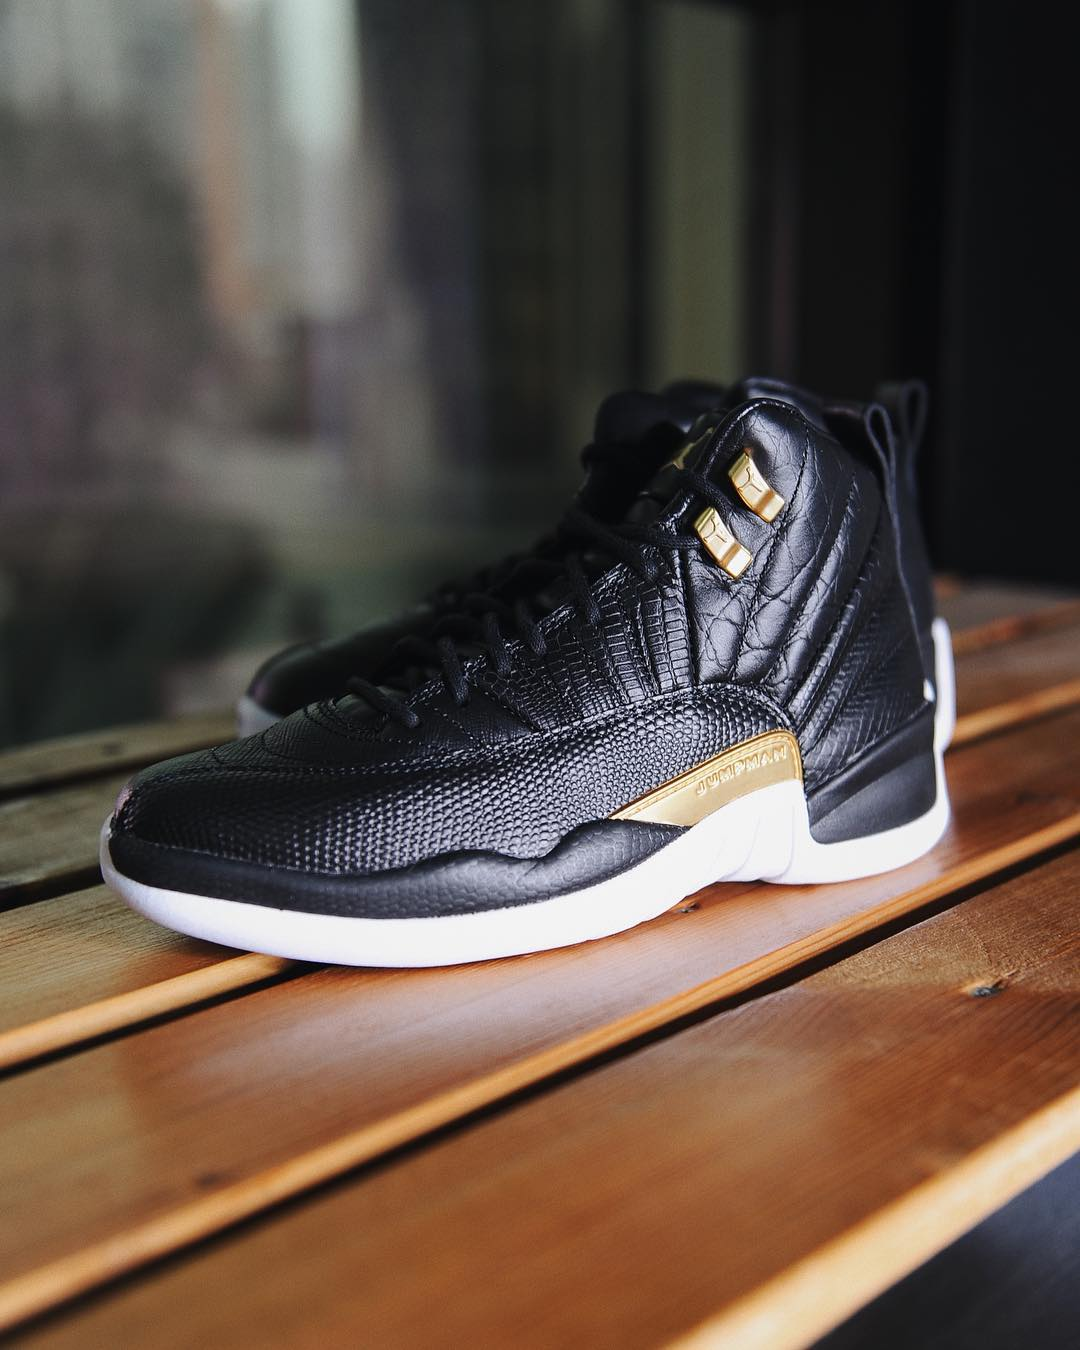 100% authentic f942a 436a7 Detailed Looks at the Ultra-Premium